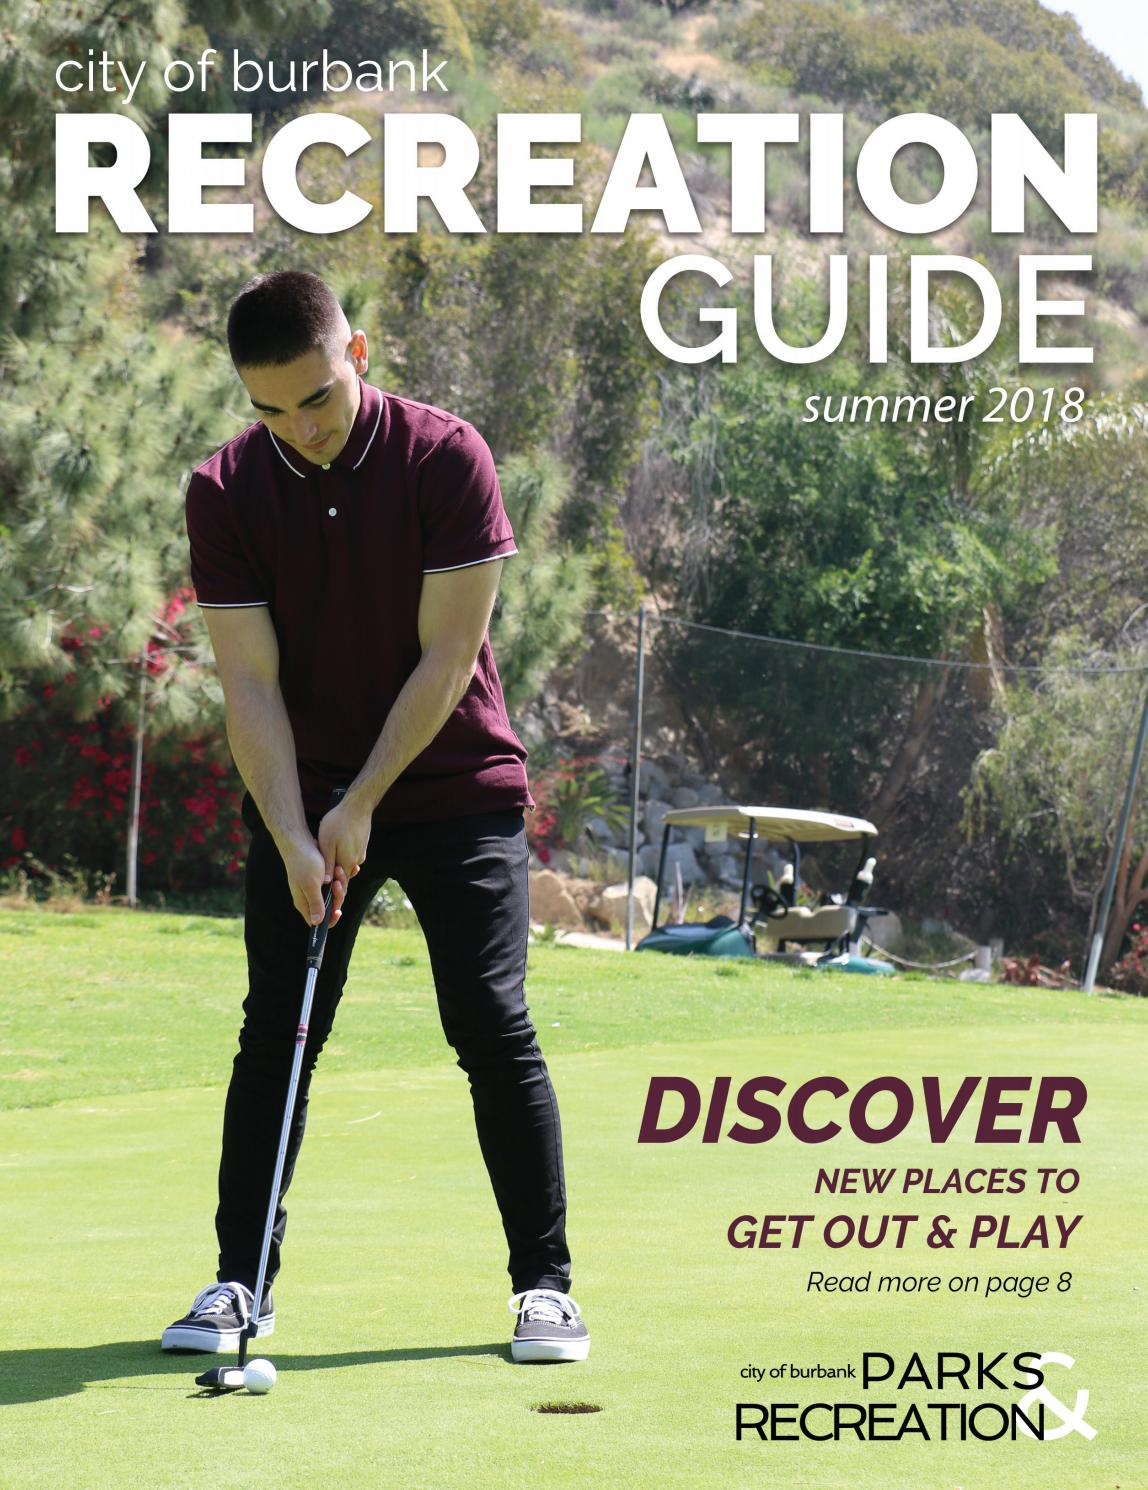 Brampton parks and recreation guide